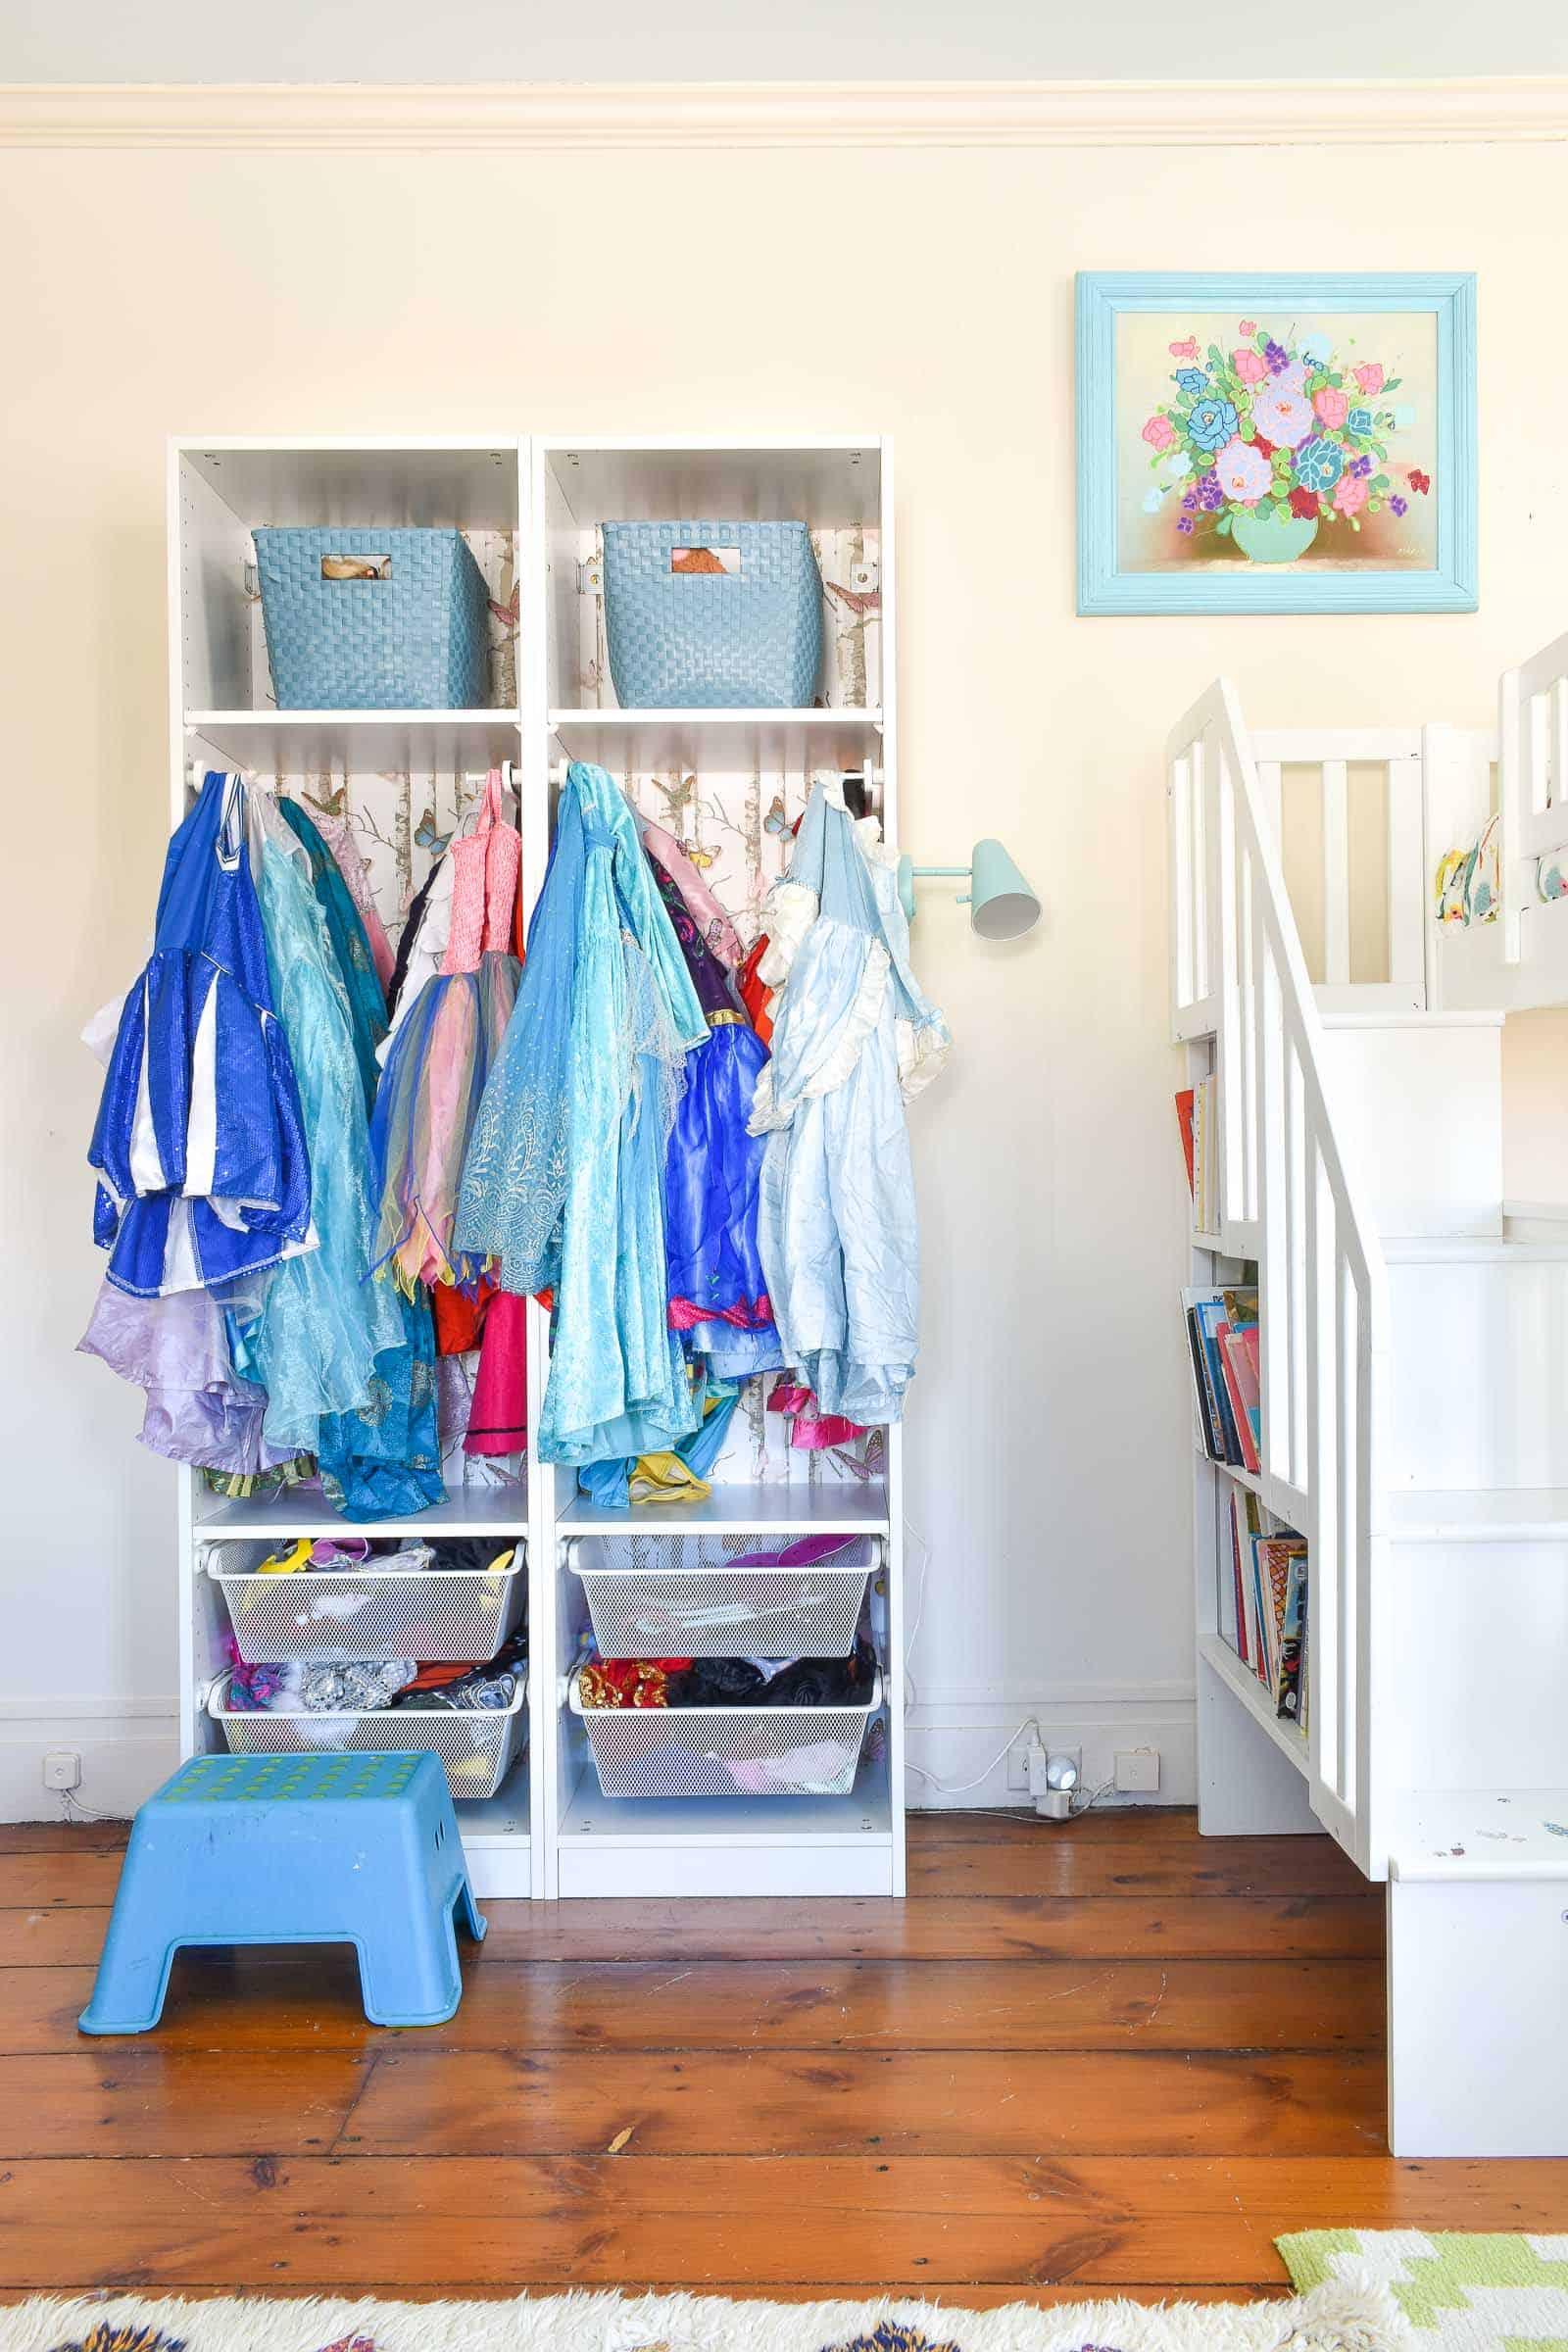 Merveilleux Ikea Dress Up Storage